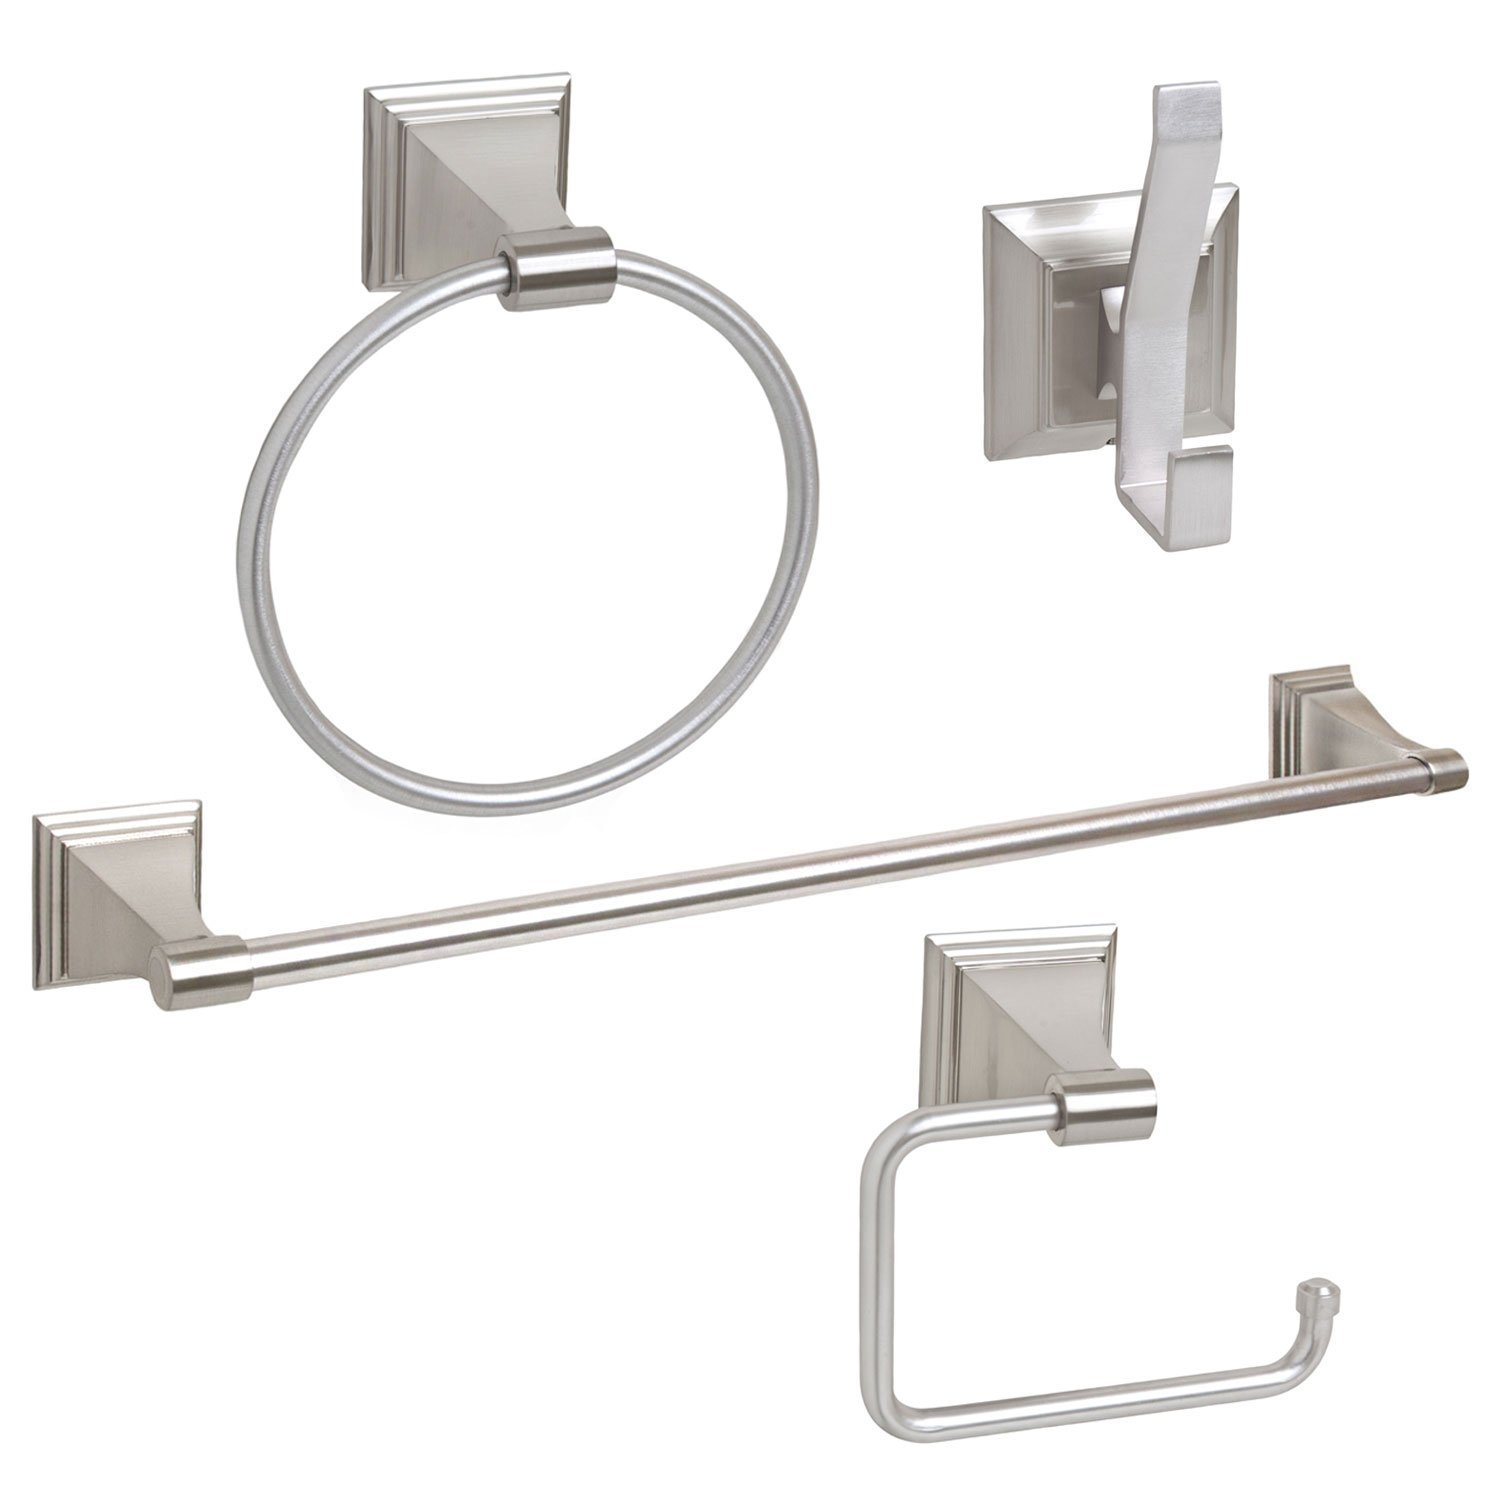 "4-Piece Bathroom Hardware Accessory Set With 24"" Towel Bar - Satin / Brushed Nickel"